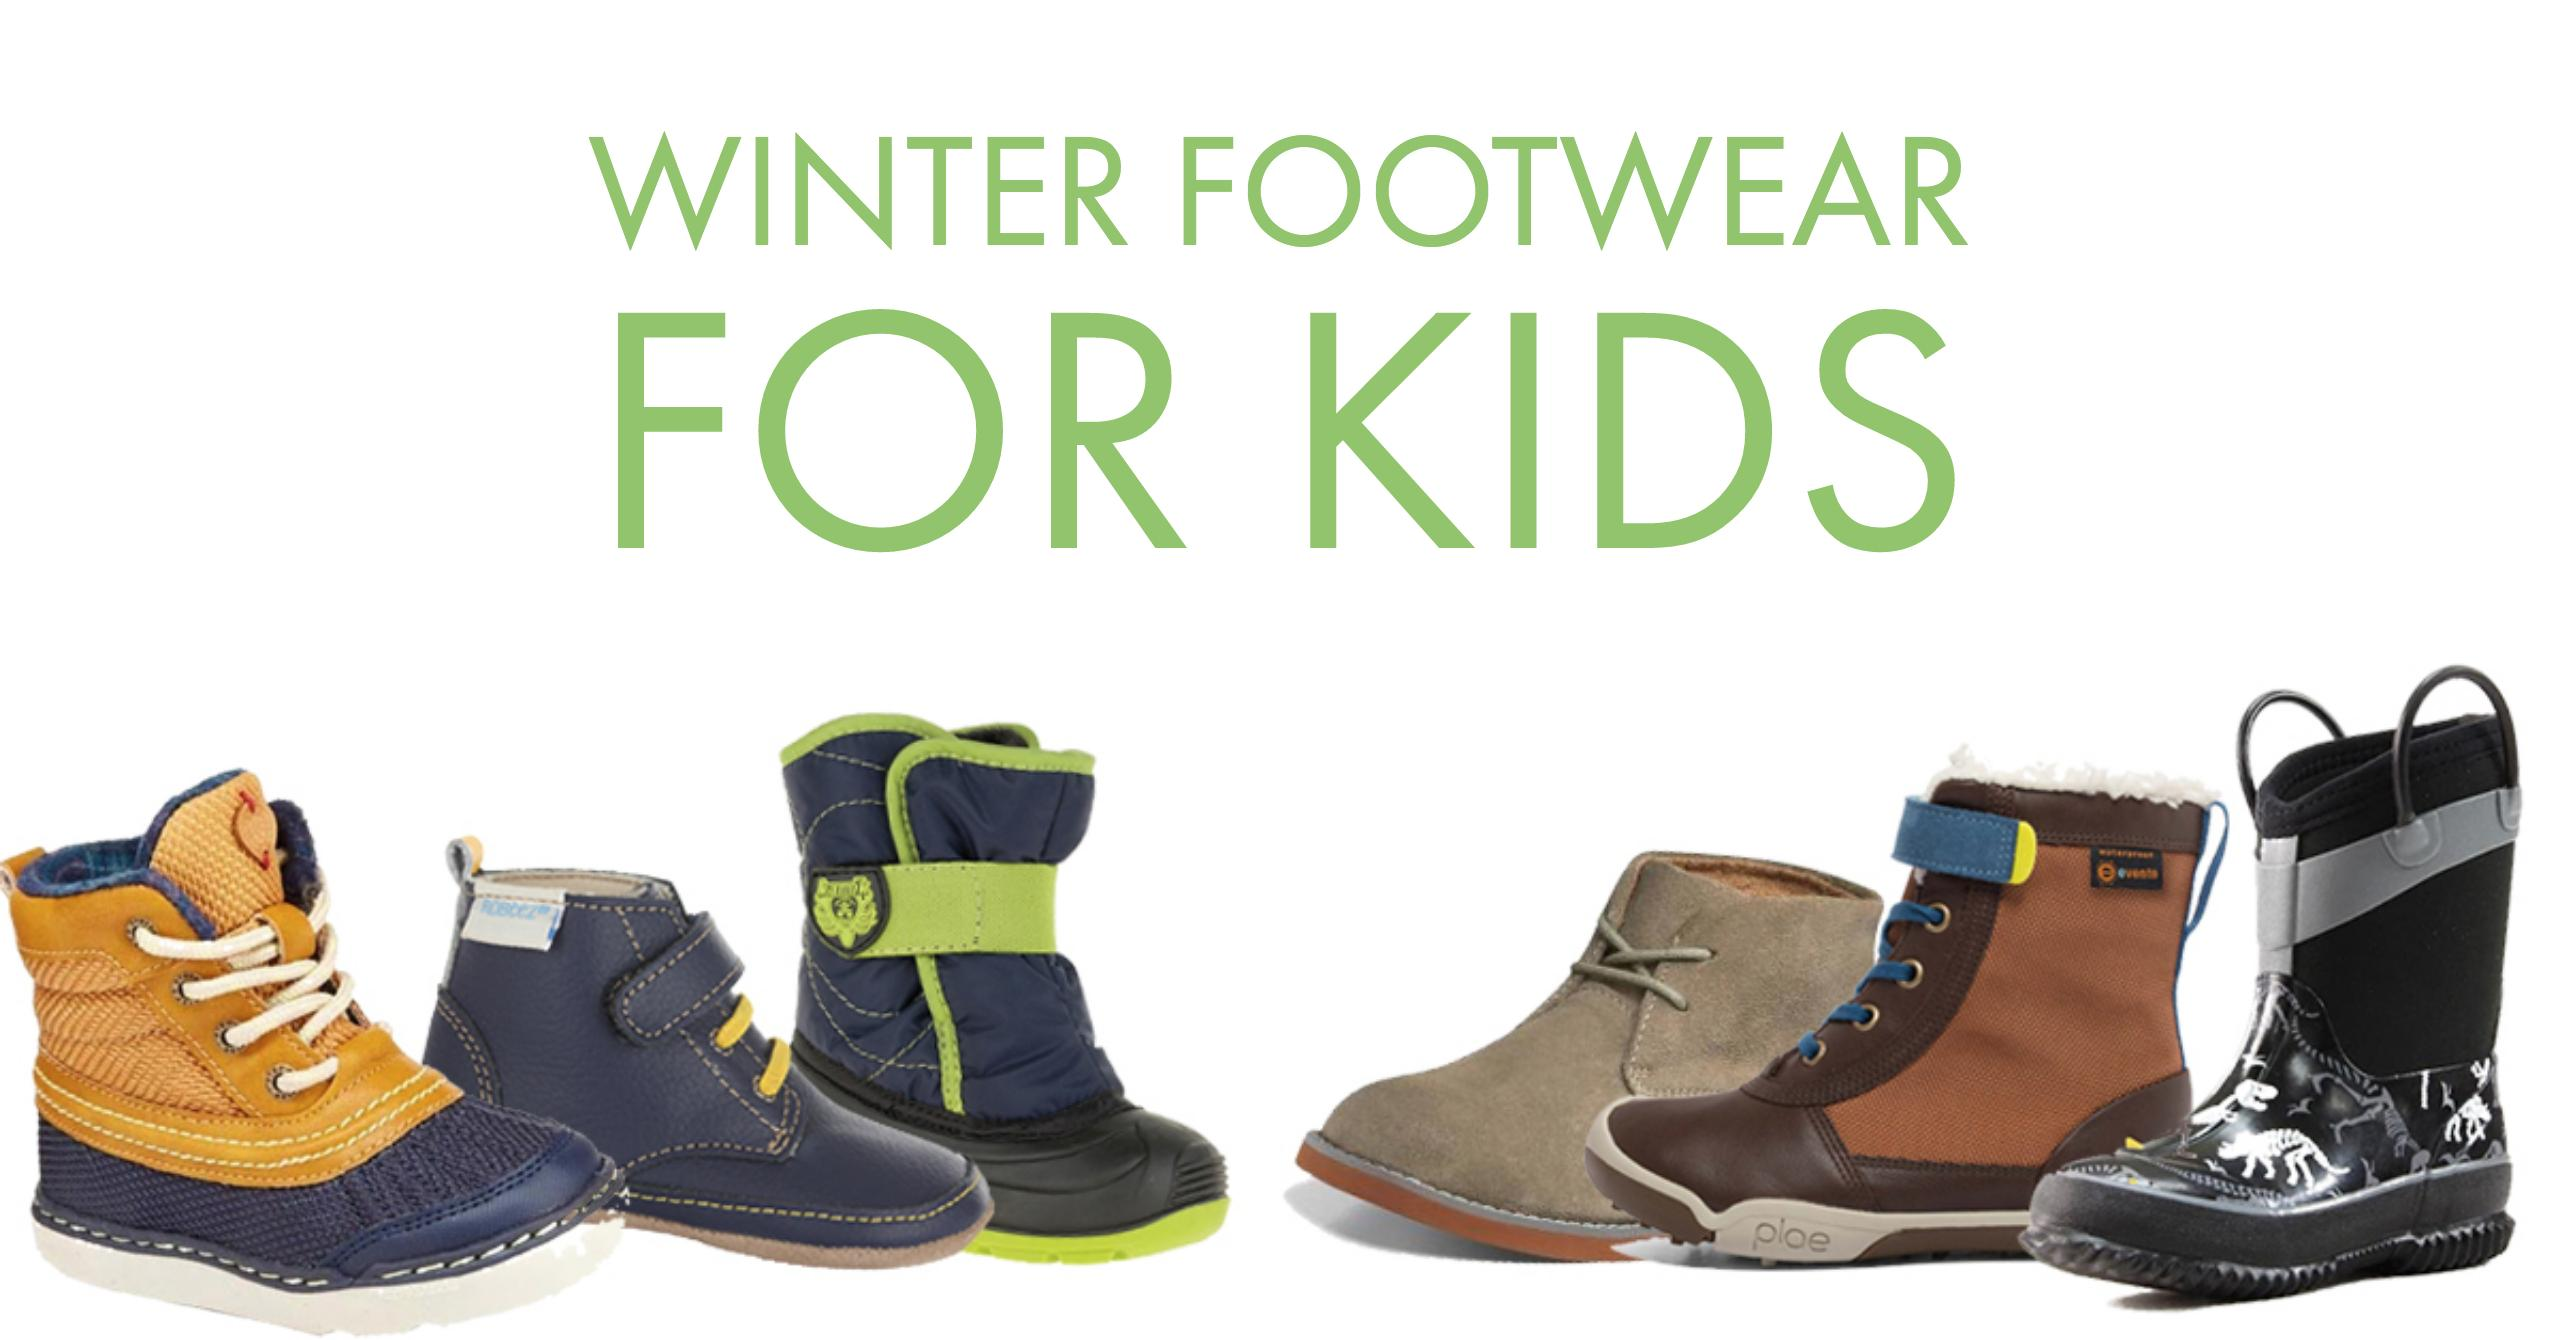 Winter Footwear for Kids